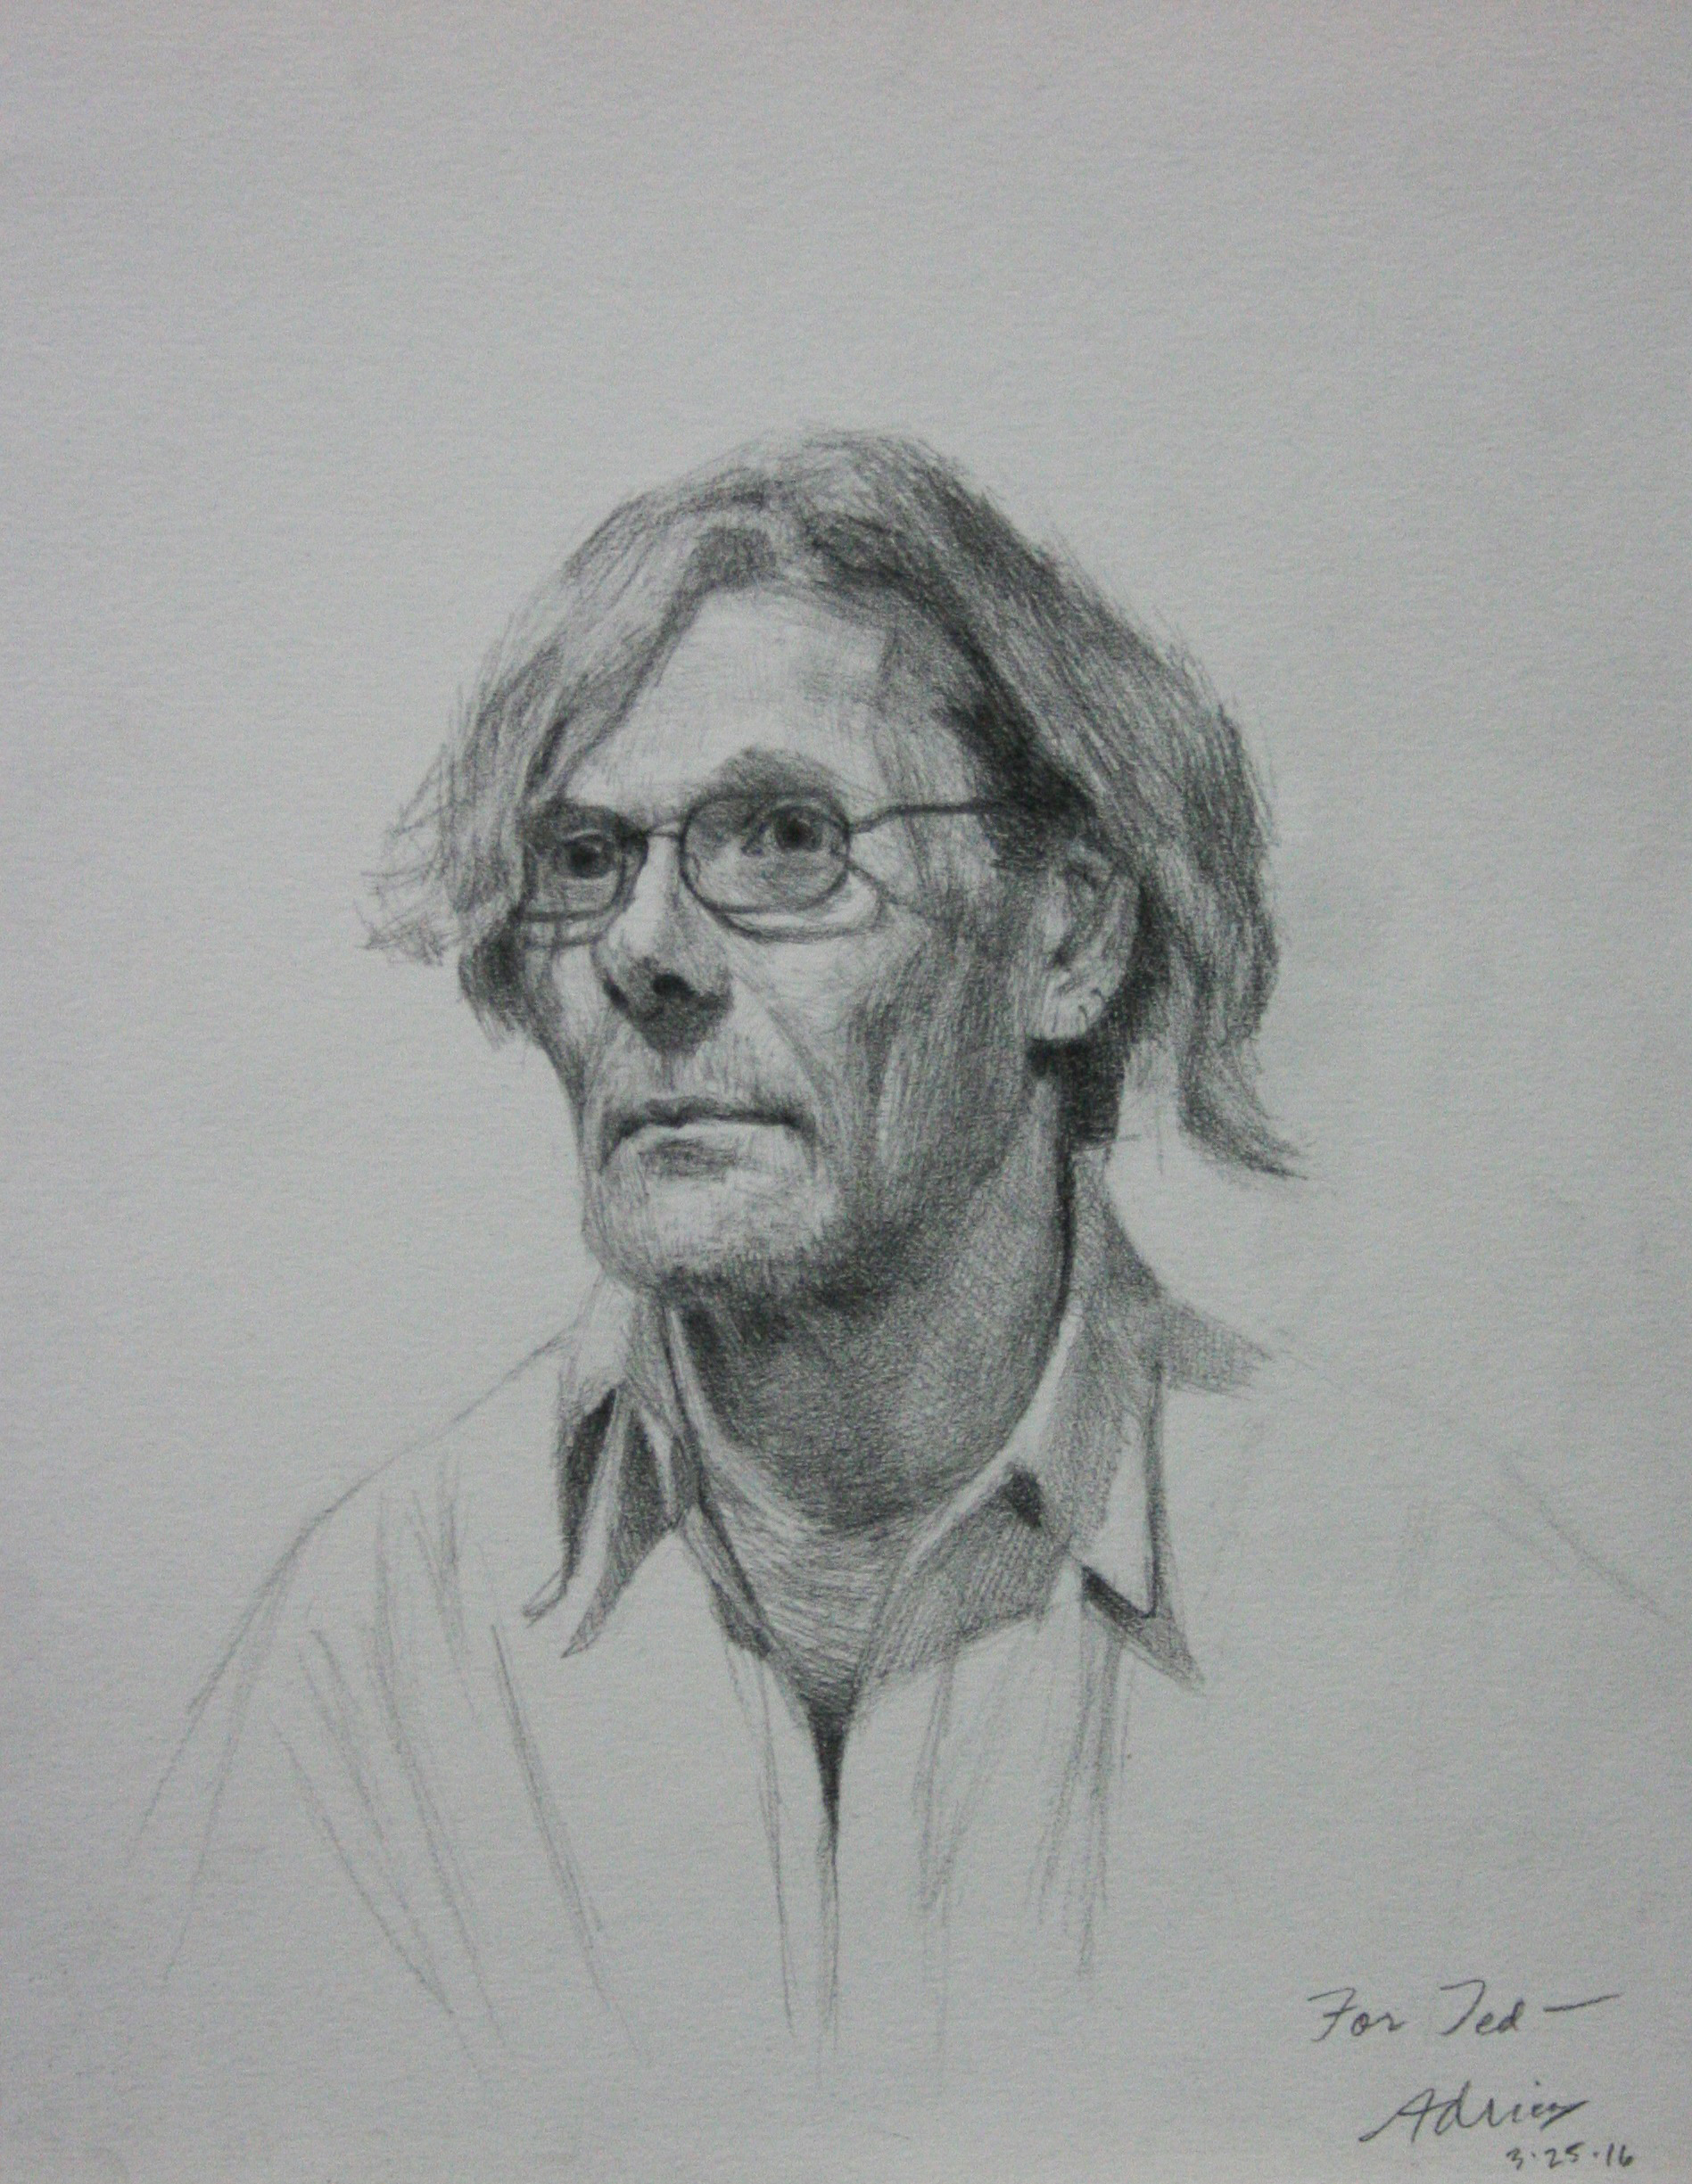 Adrian Eisenhower did this 3-hour drawing.